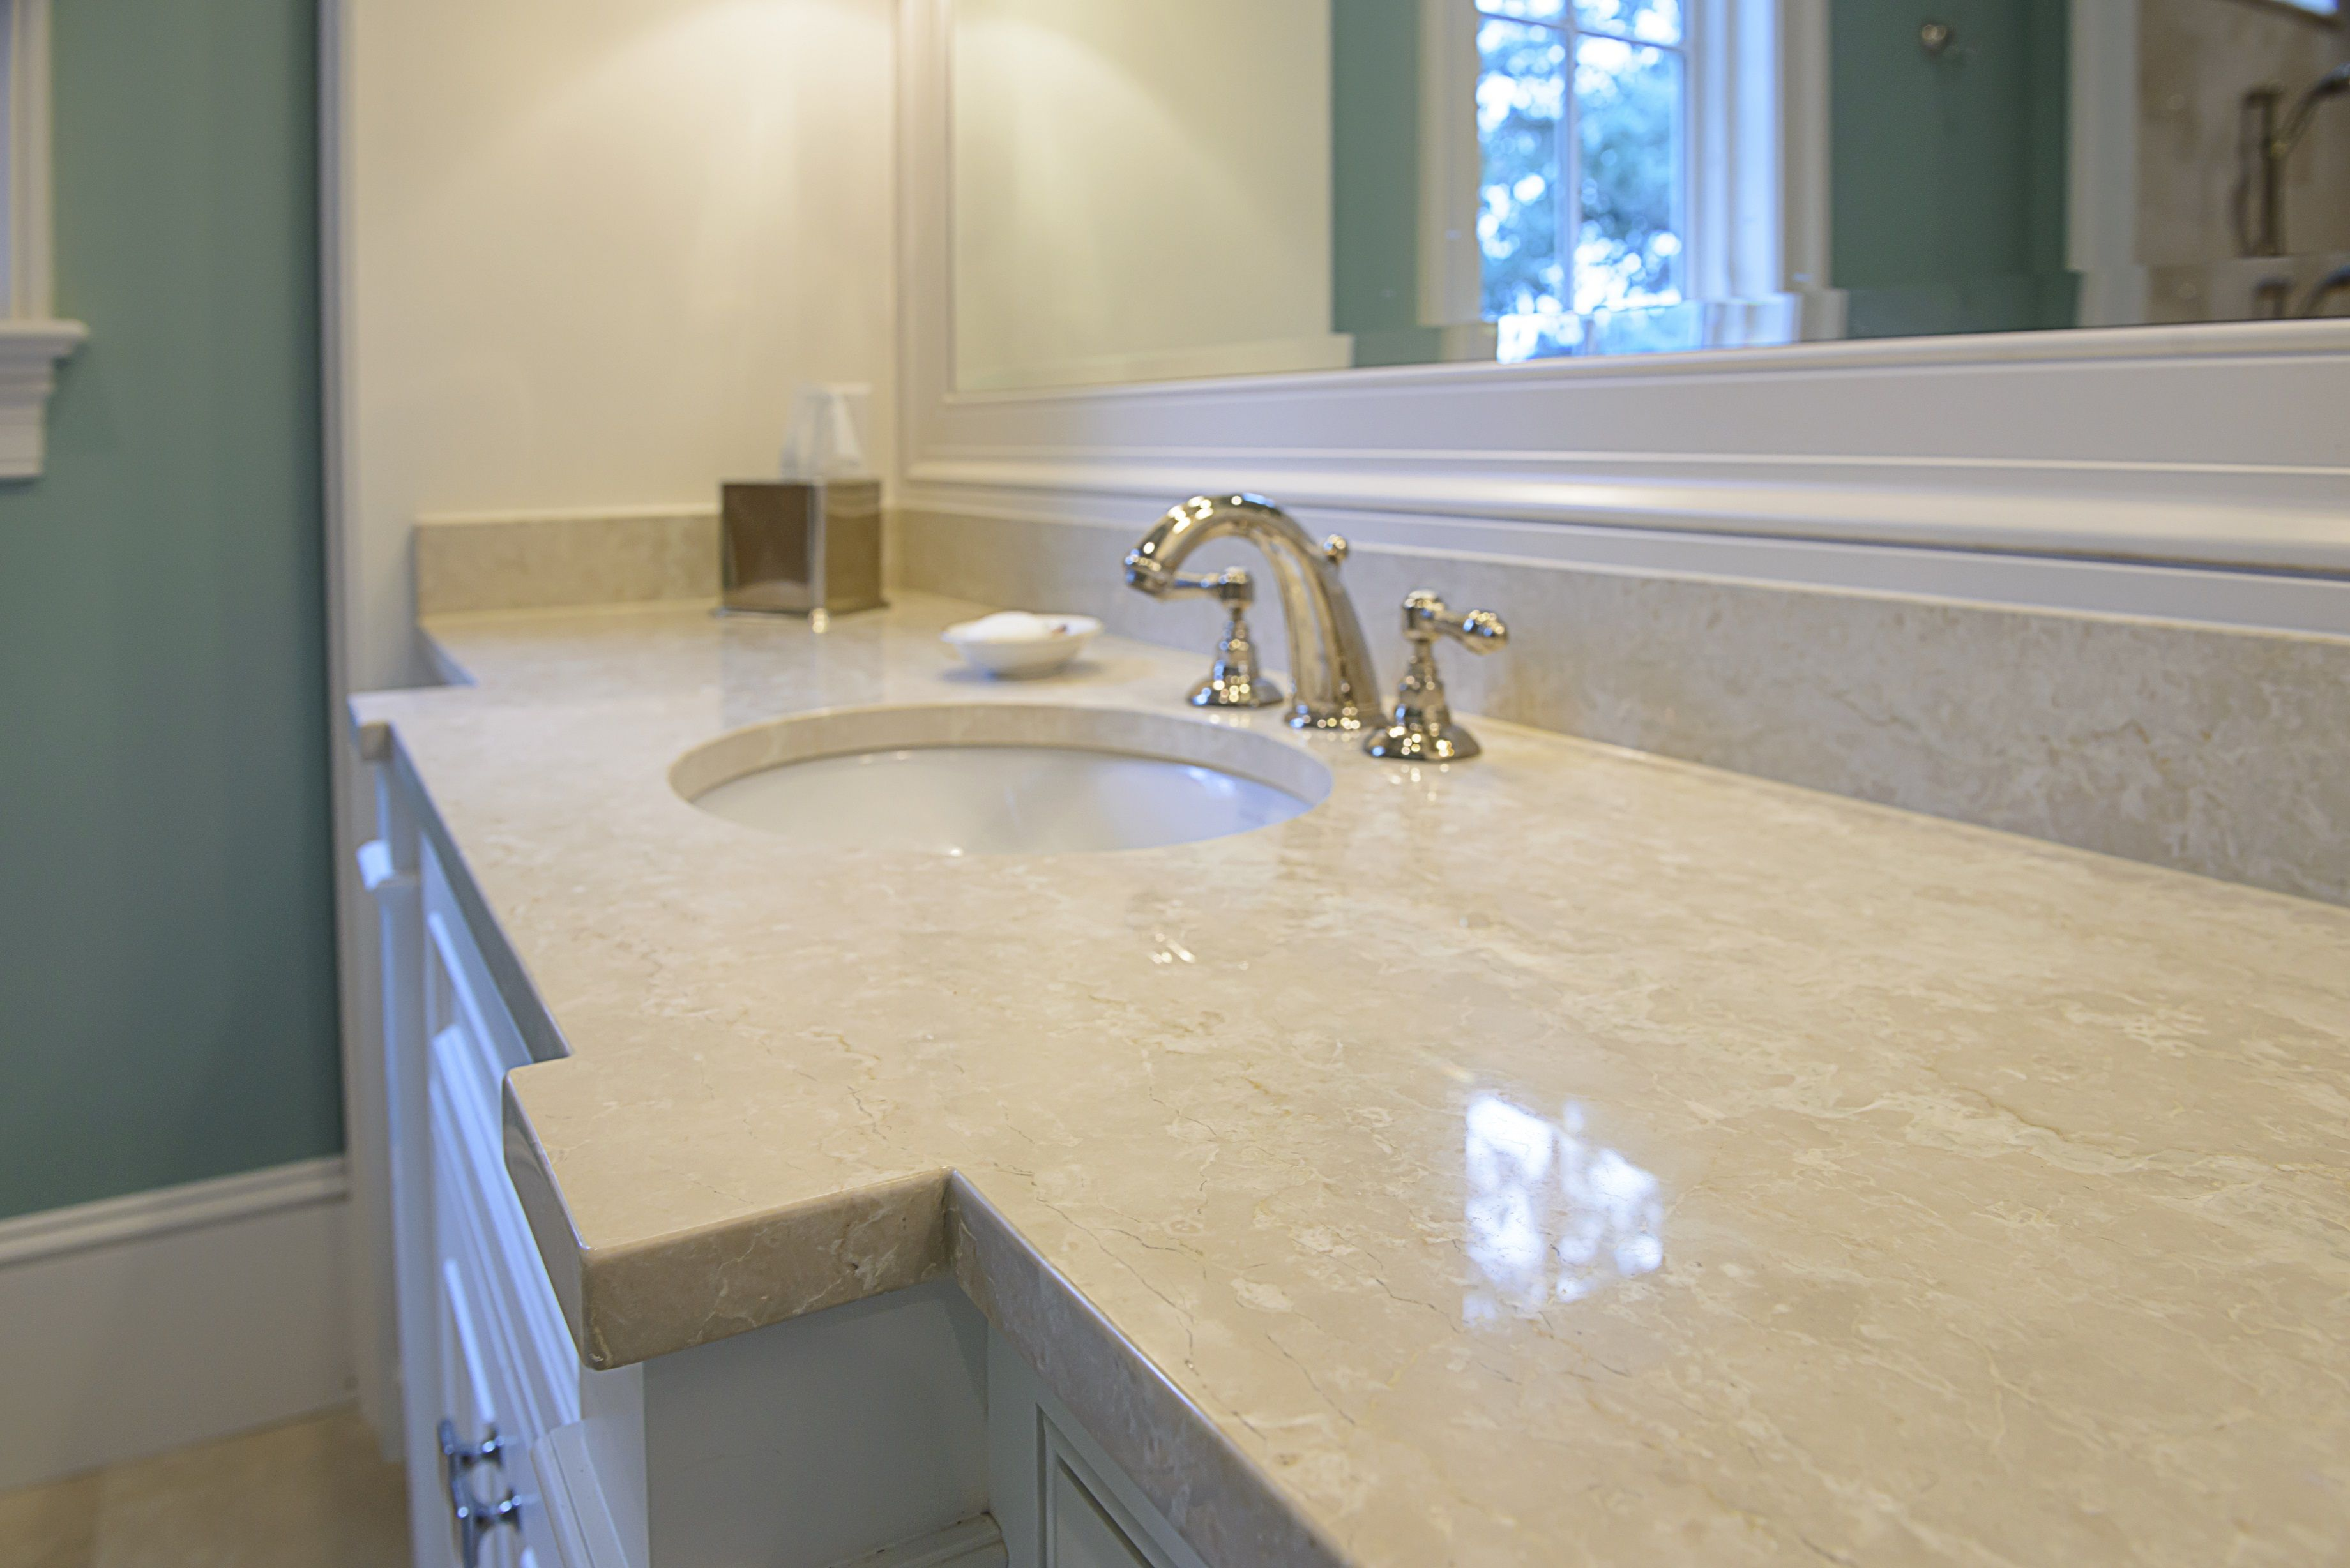 Master Bath Vanity Botticino Fiorito Marble Countertops Eased Edge And Bump Out Following Intricate De Porcelain Countertops Countertops Master Bath Vanity